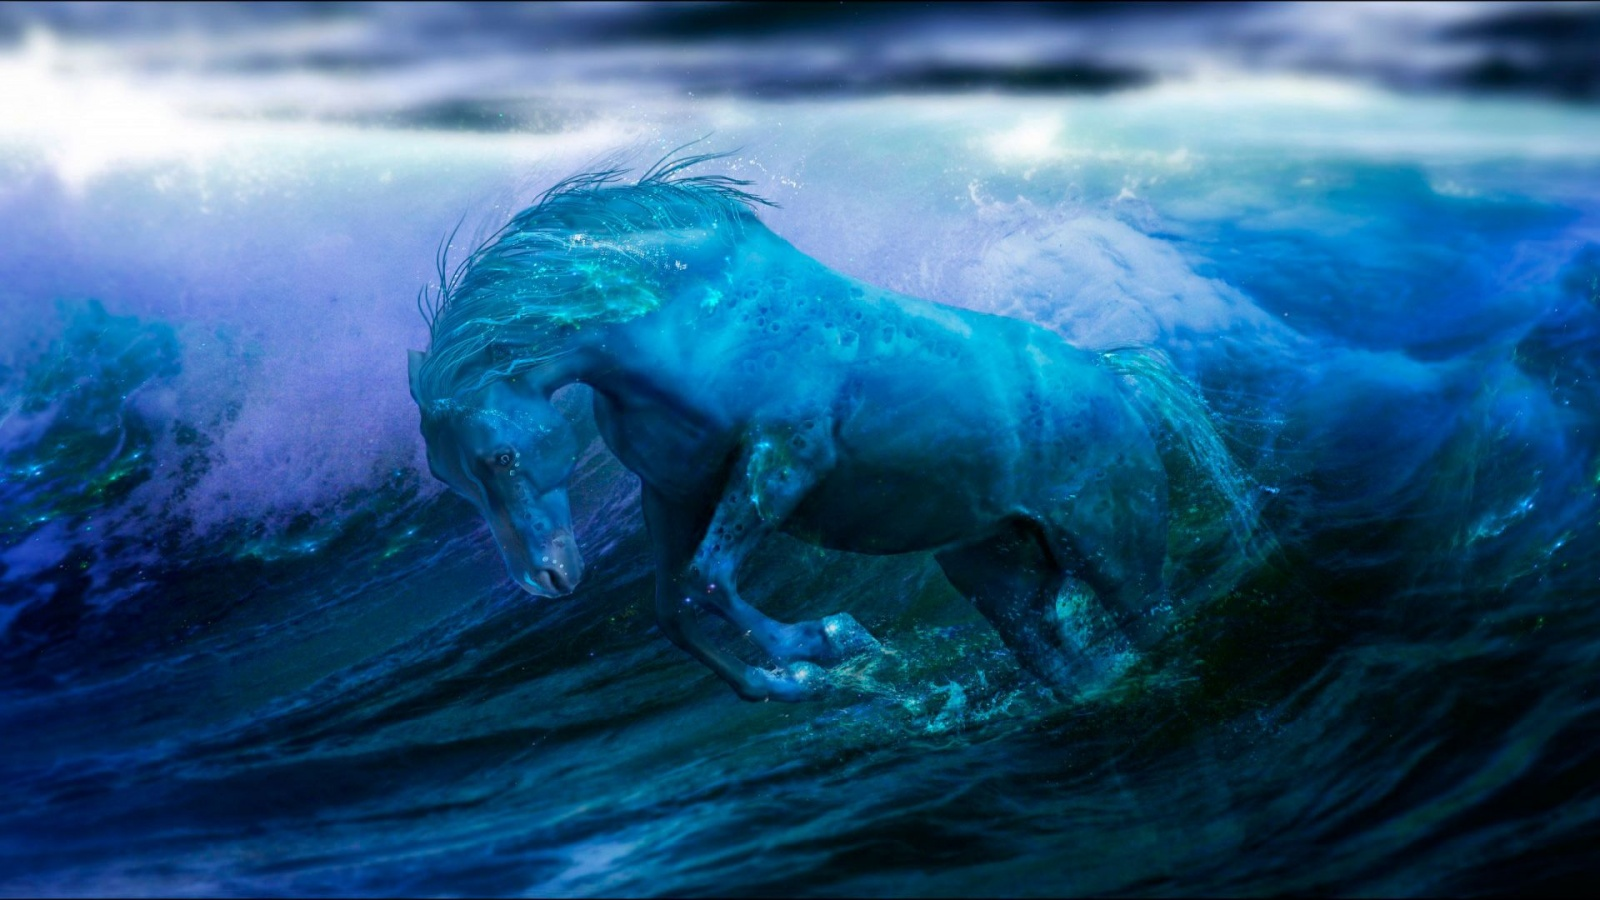 Water Horse Wallpapers - 1600x900 - 347592